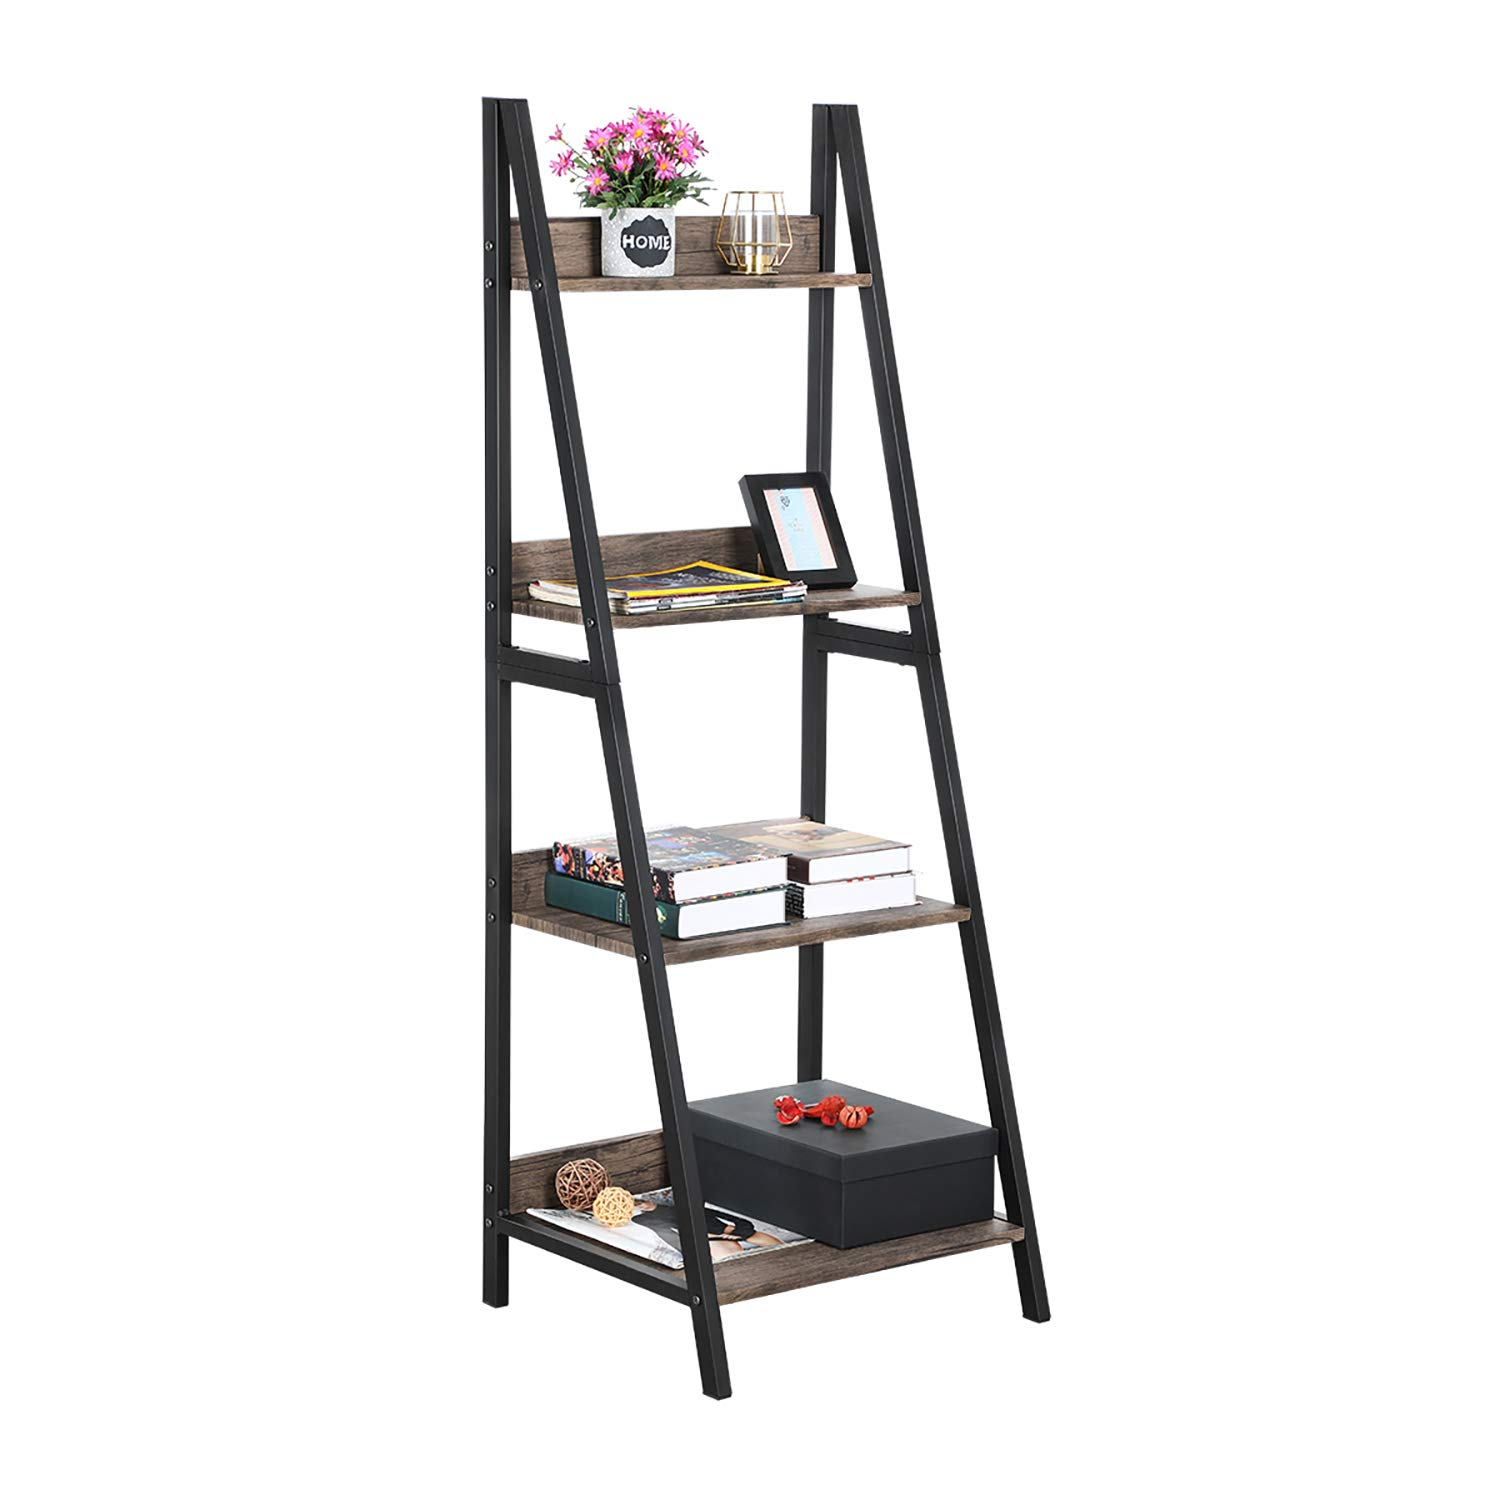 GreenForest Ladder Shelf 4 Tier Bookcase Metal Frame Bookshelf Home Office Storage Rack Shelf Plant Stand, Walnut